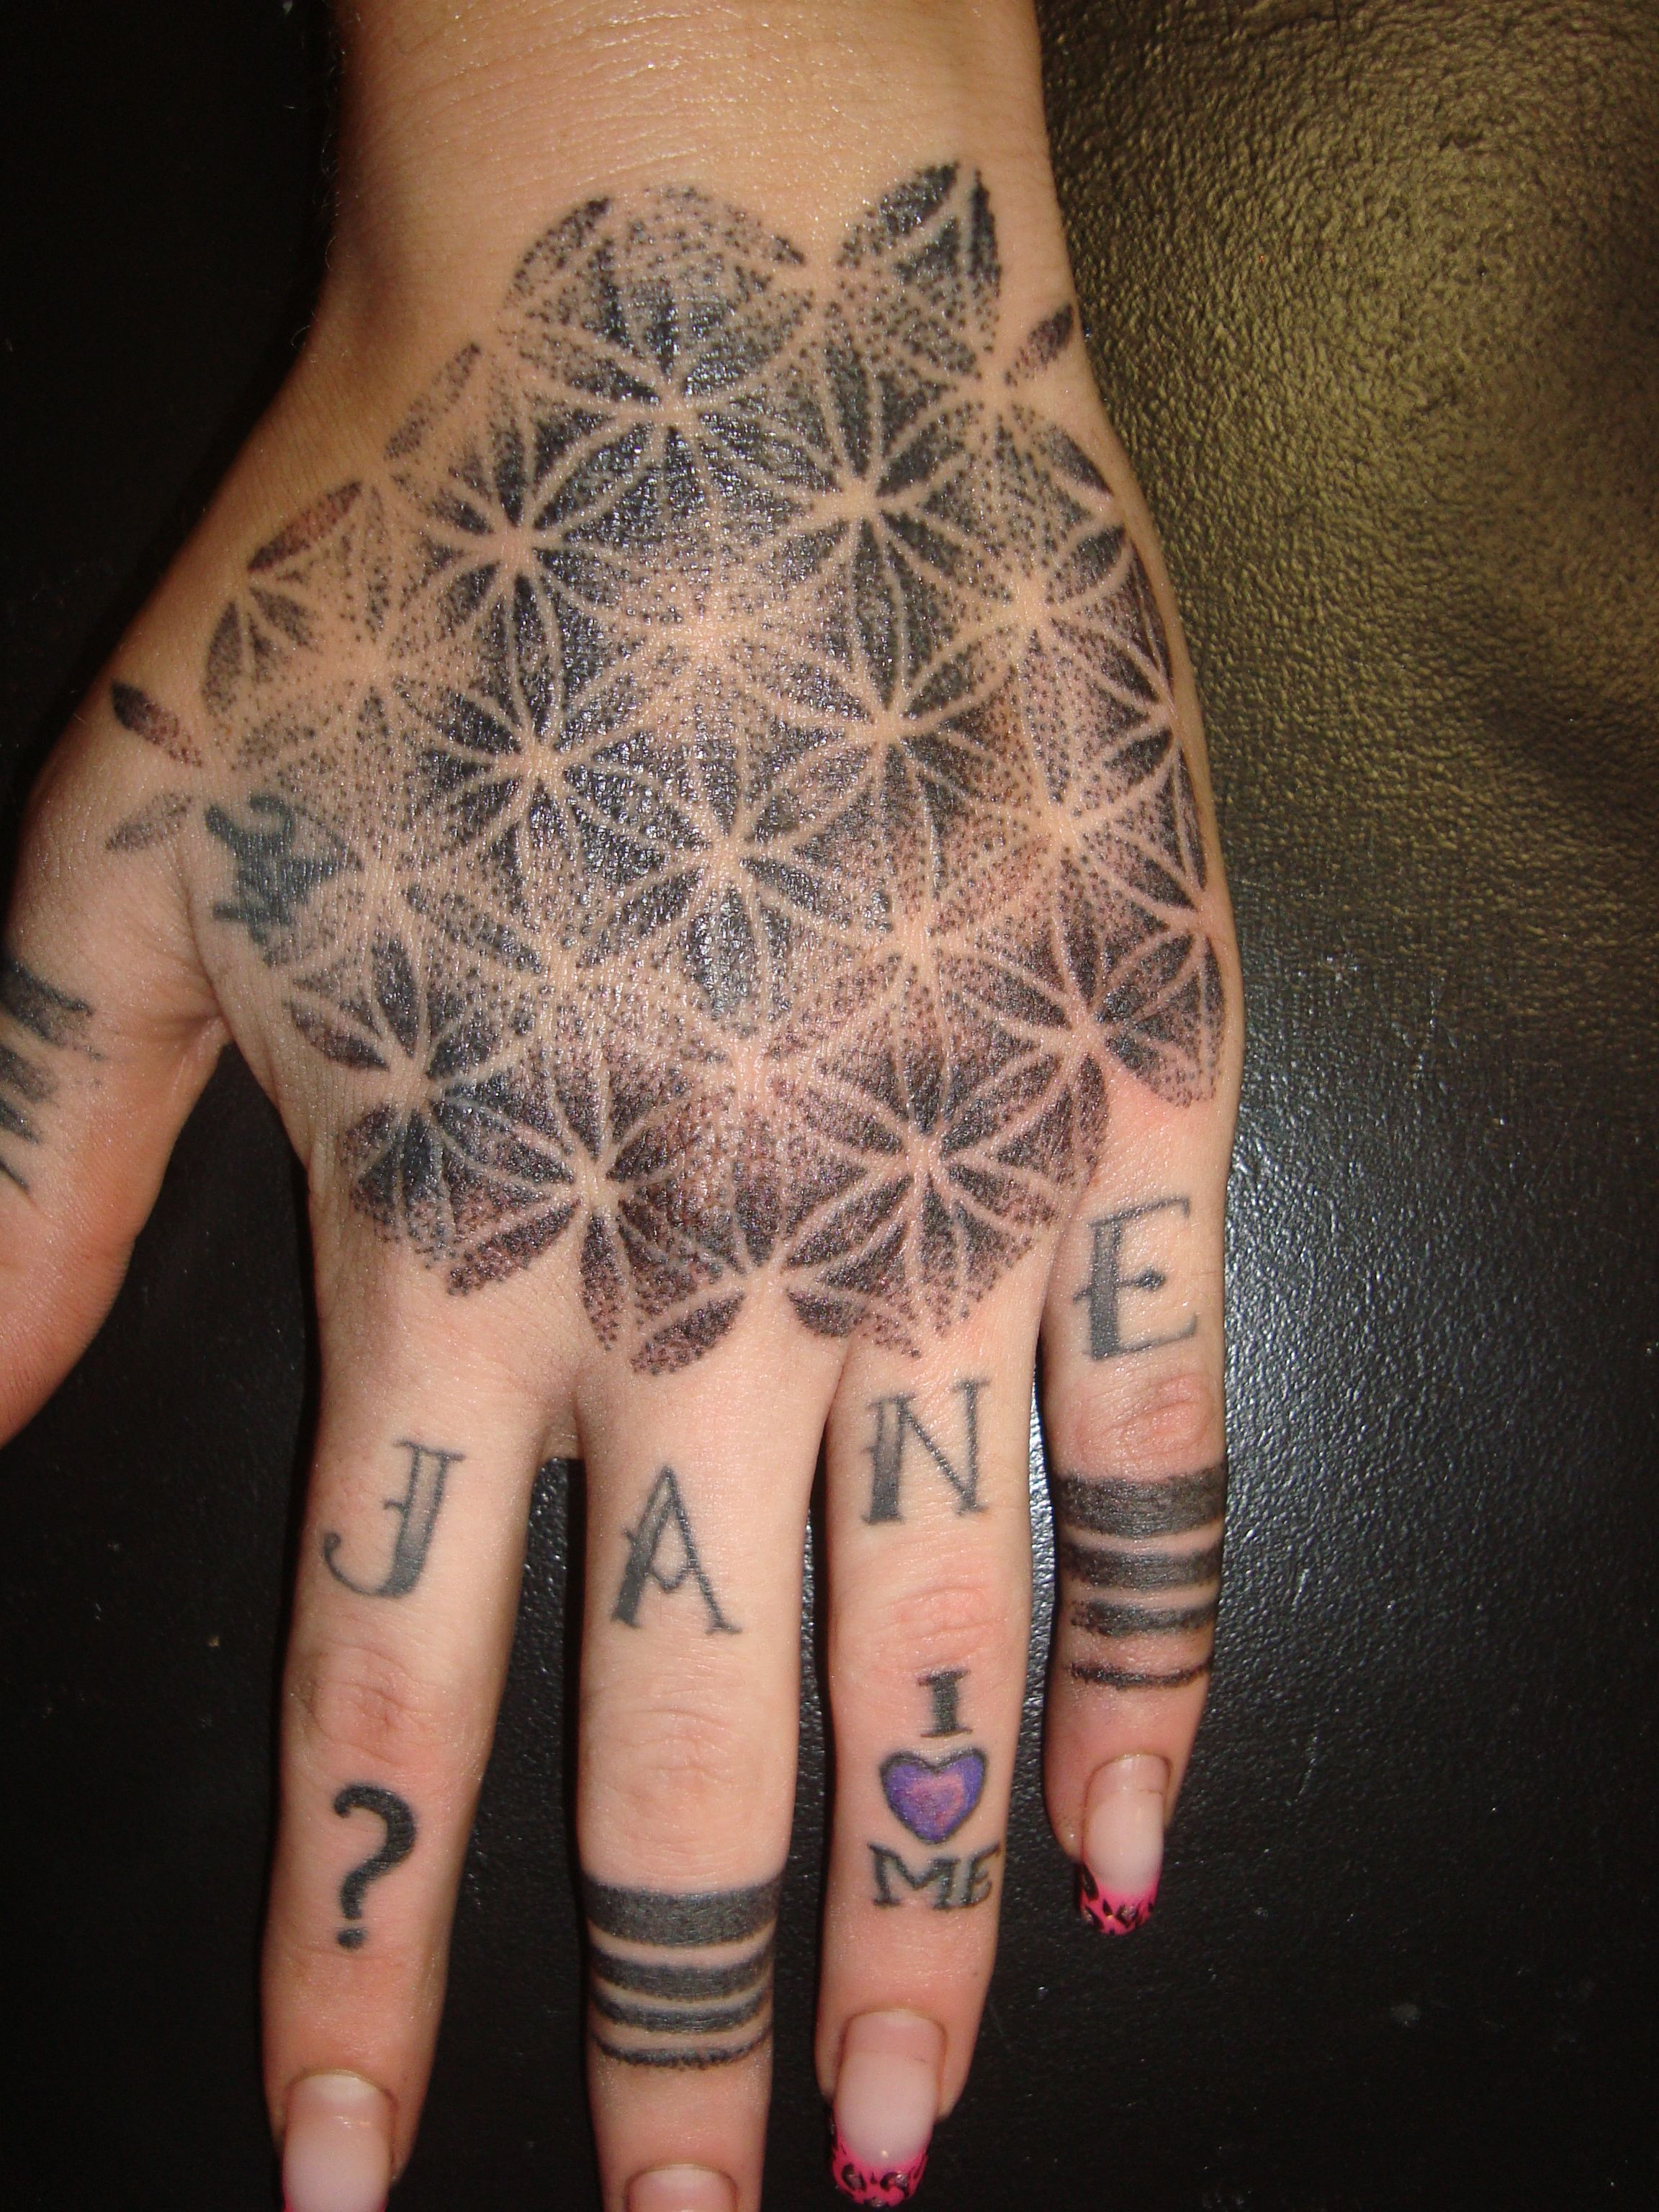 Dotwork tattoo tattoo pinterest flower of life tattoo tattoos tattoo dotwork tattoo mary jane tattoo dotwork artist stockholm i like the bands around her fingers izmirmasajfo